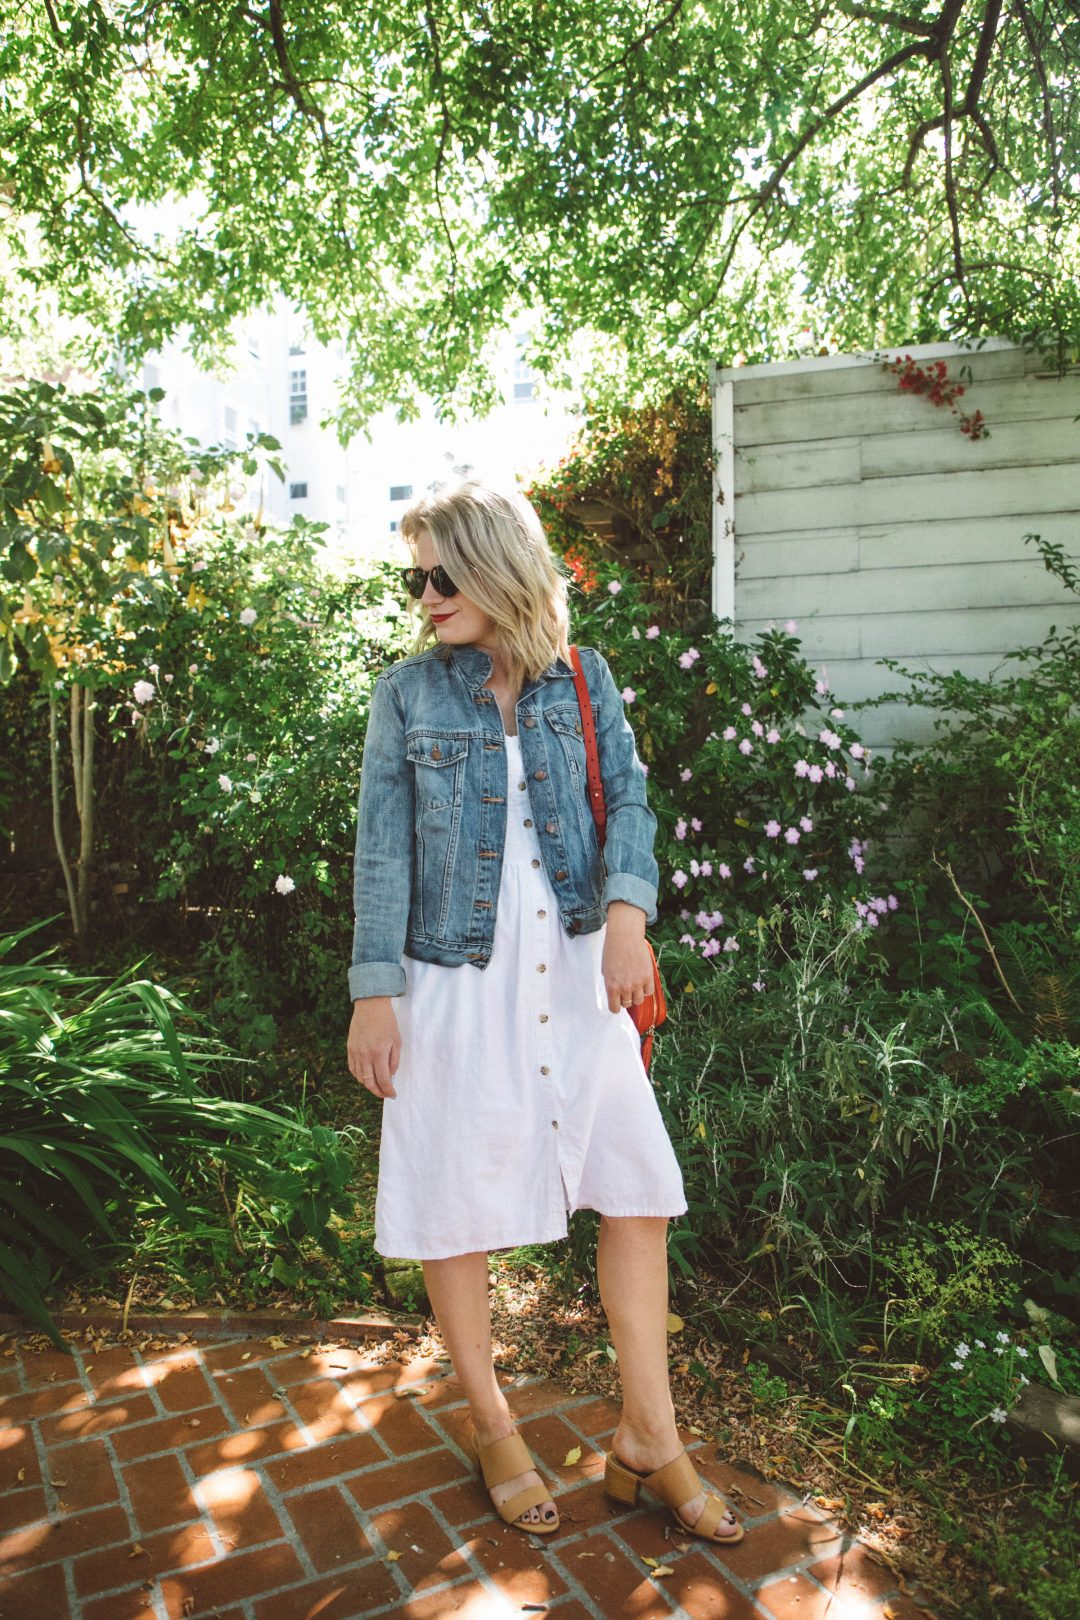 My Favorite Summer Essential: The White Dress